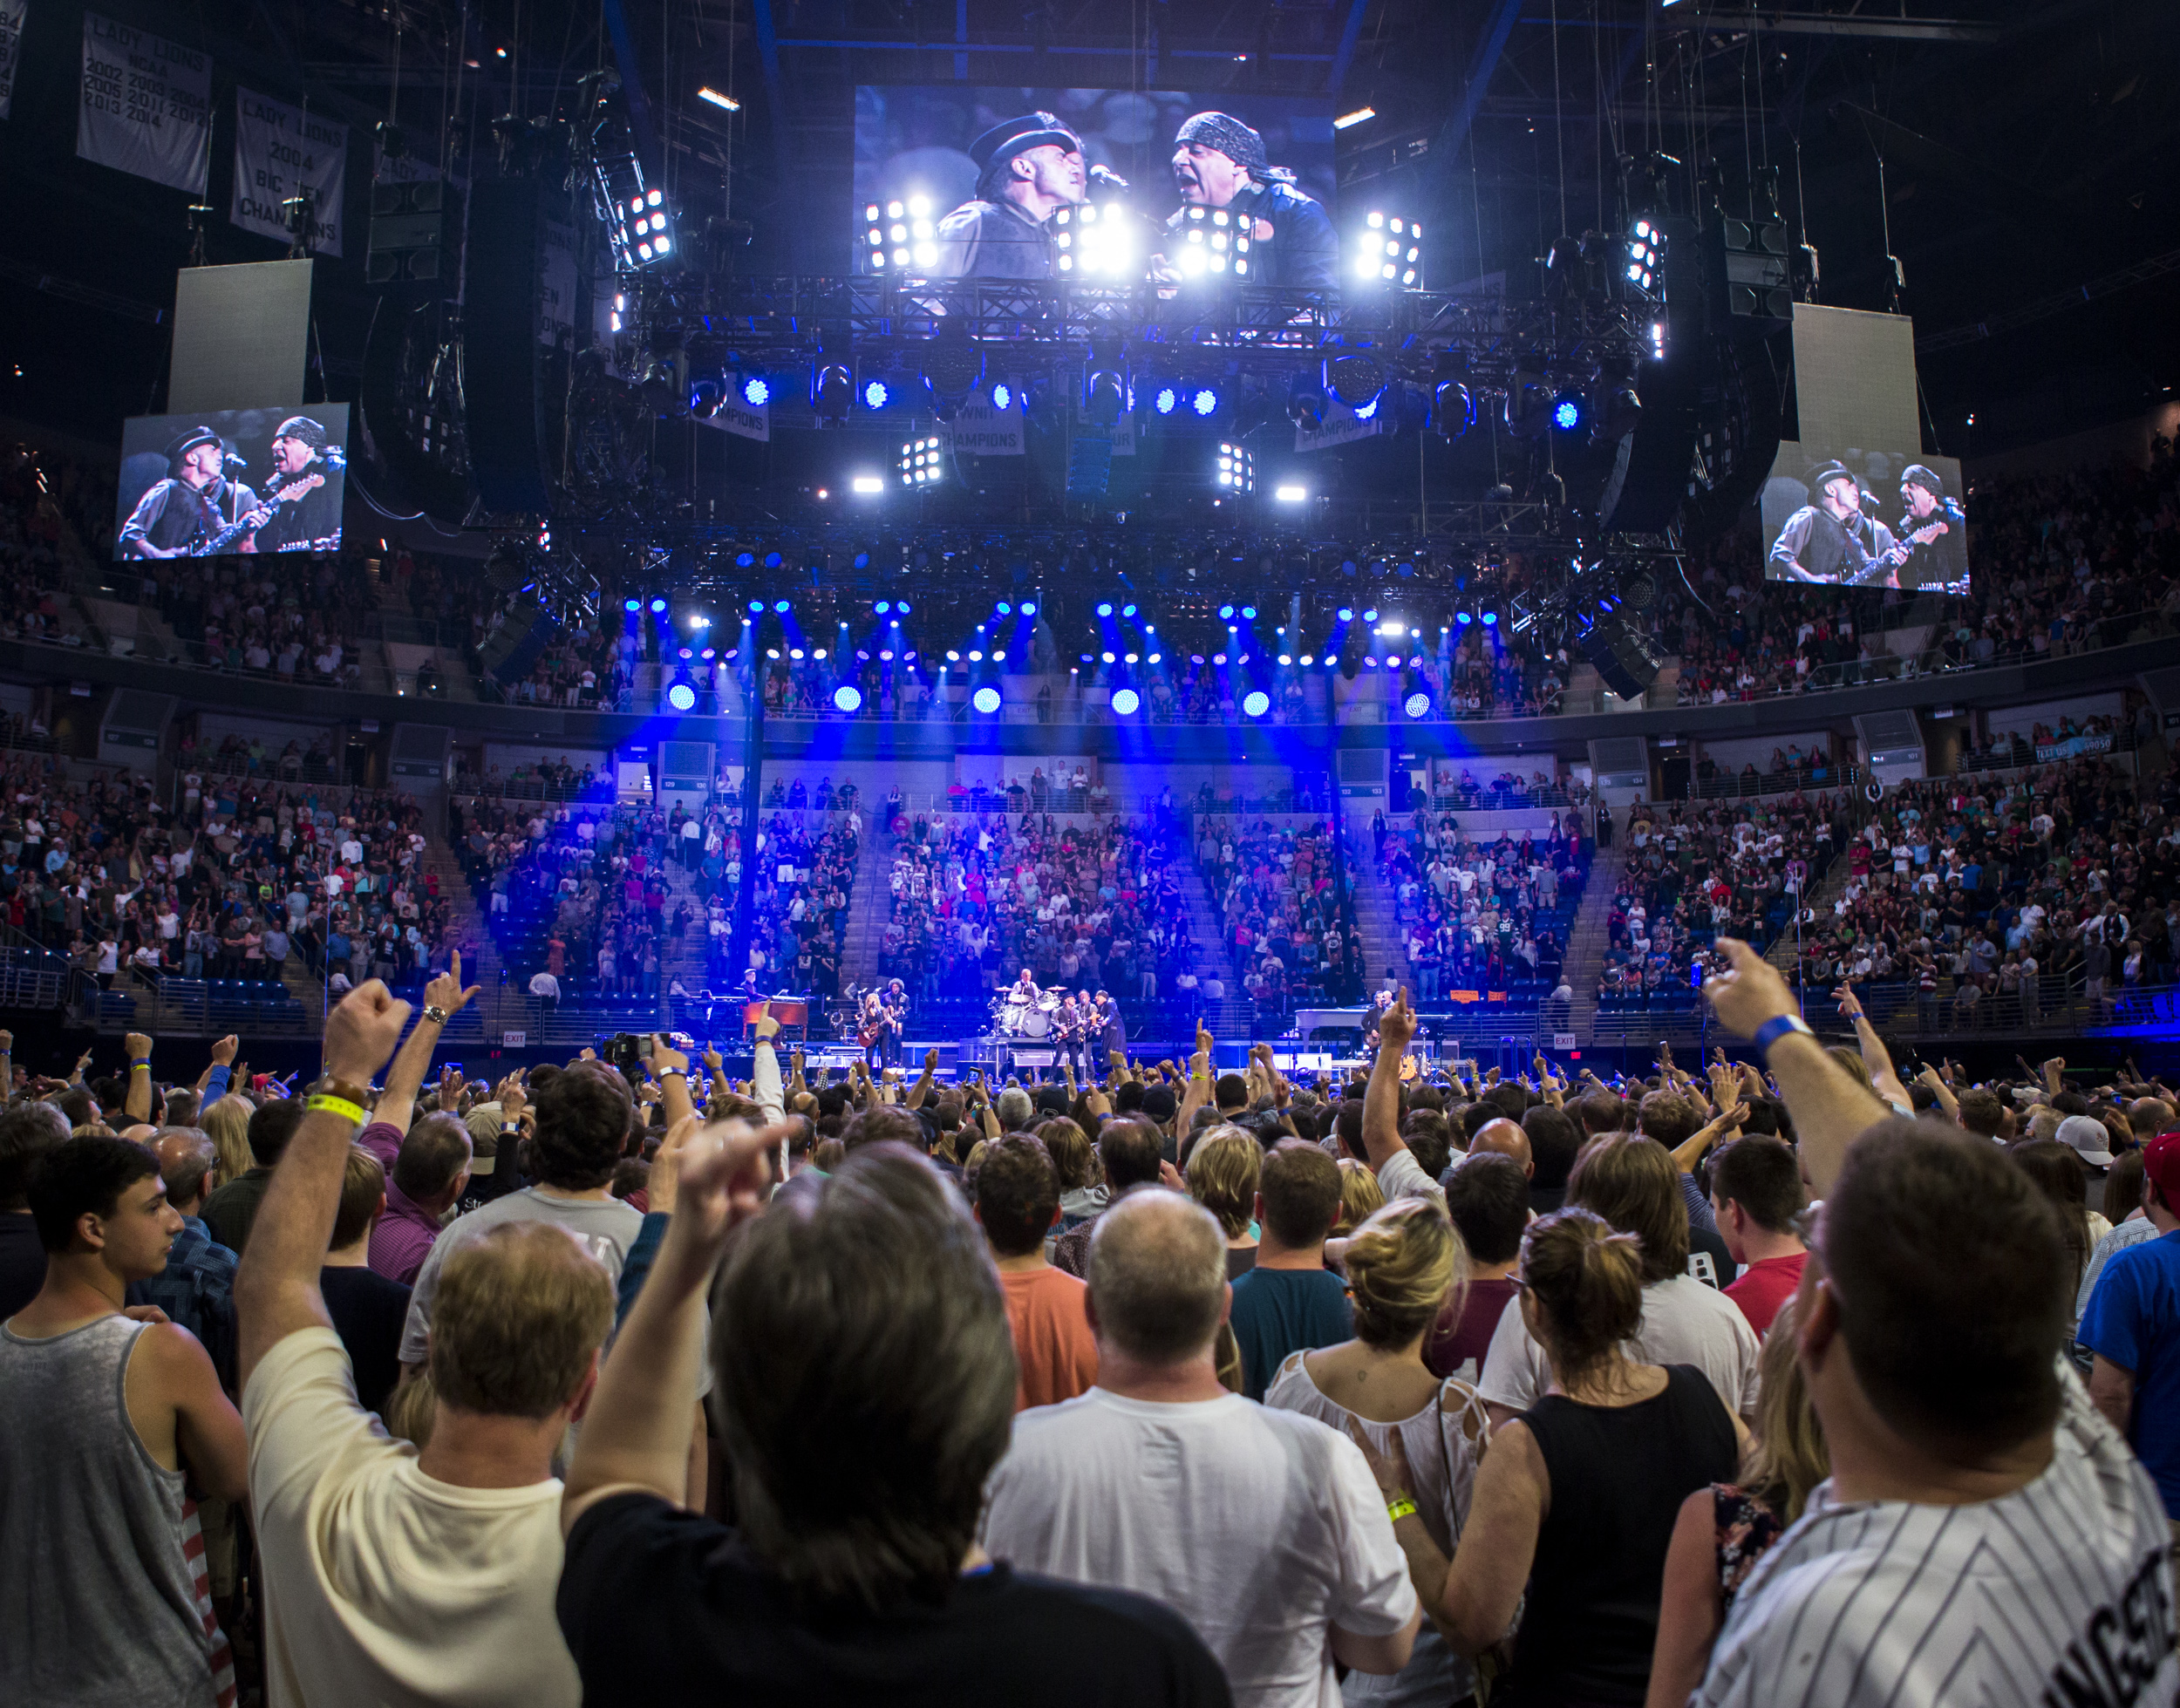 Fans sing along with Bruce Springsteen and the E Street Band during their performance at the Bryce Jordan Center on Monday, April 18,2016.